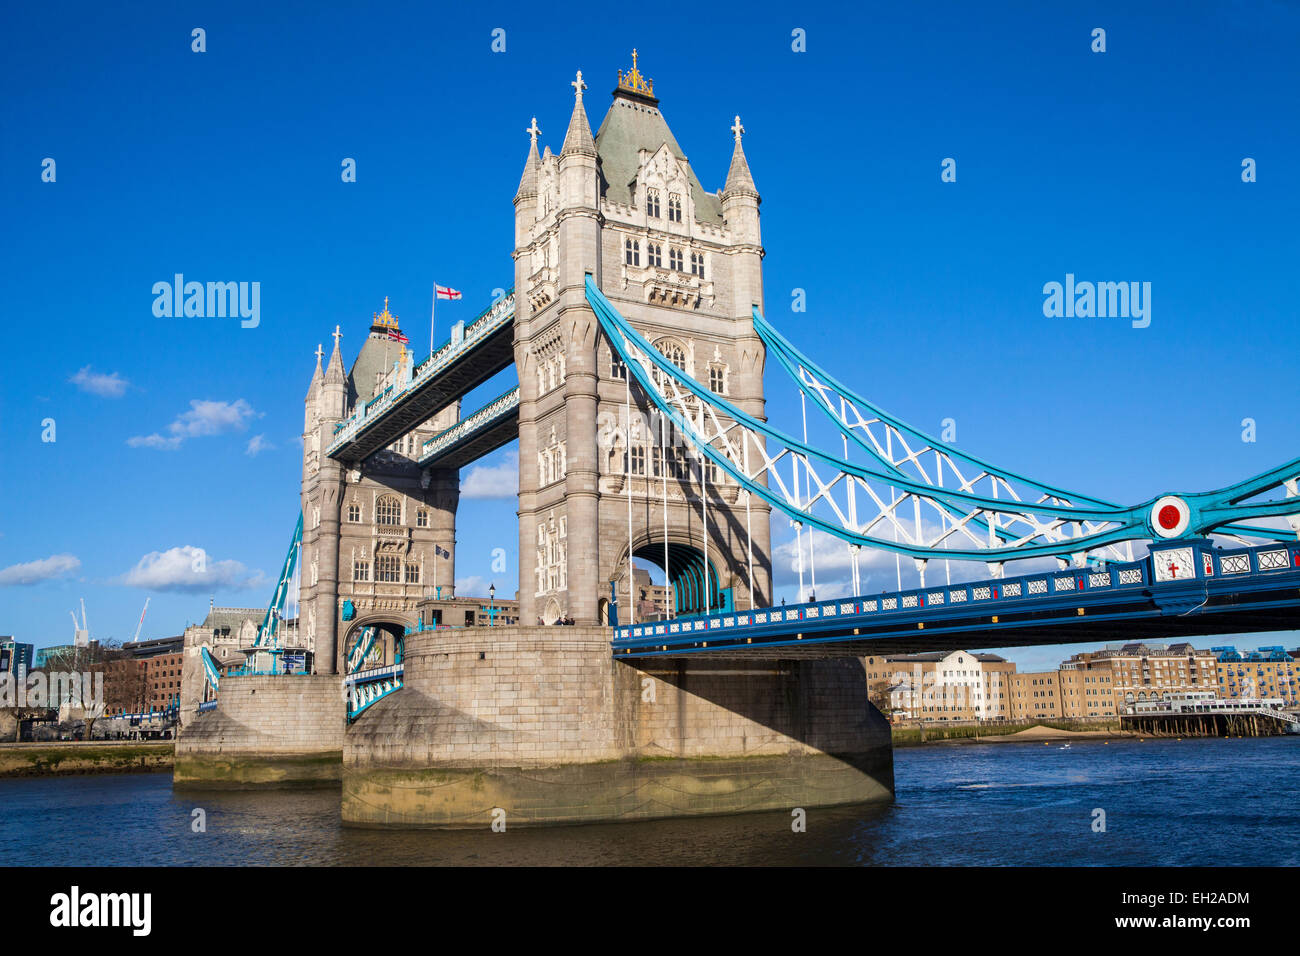 The beautiful Tower Bridge under a clear blue sky in London. - Stock Image